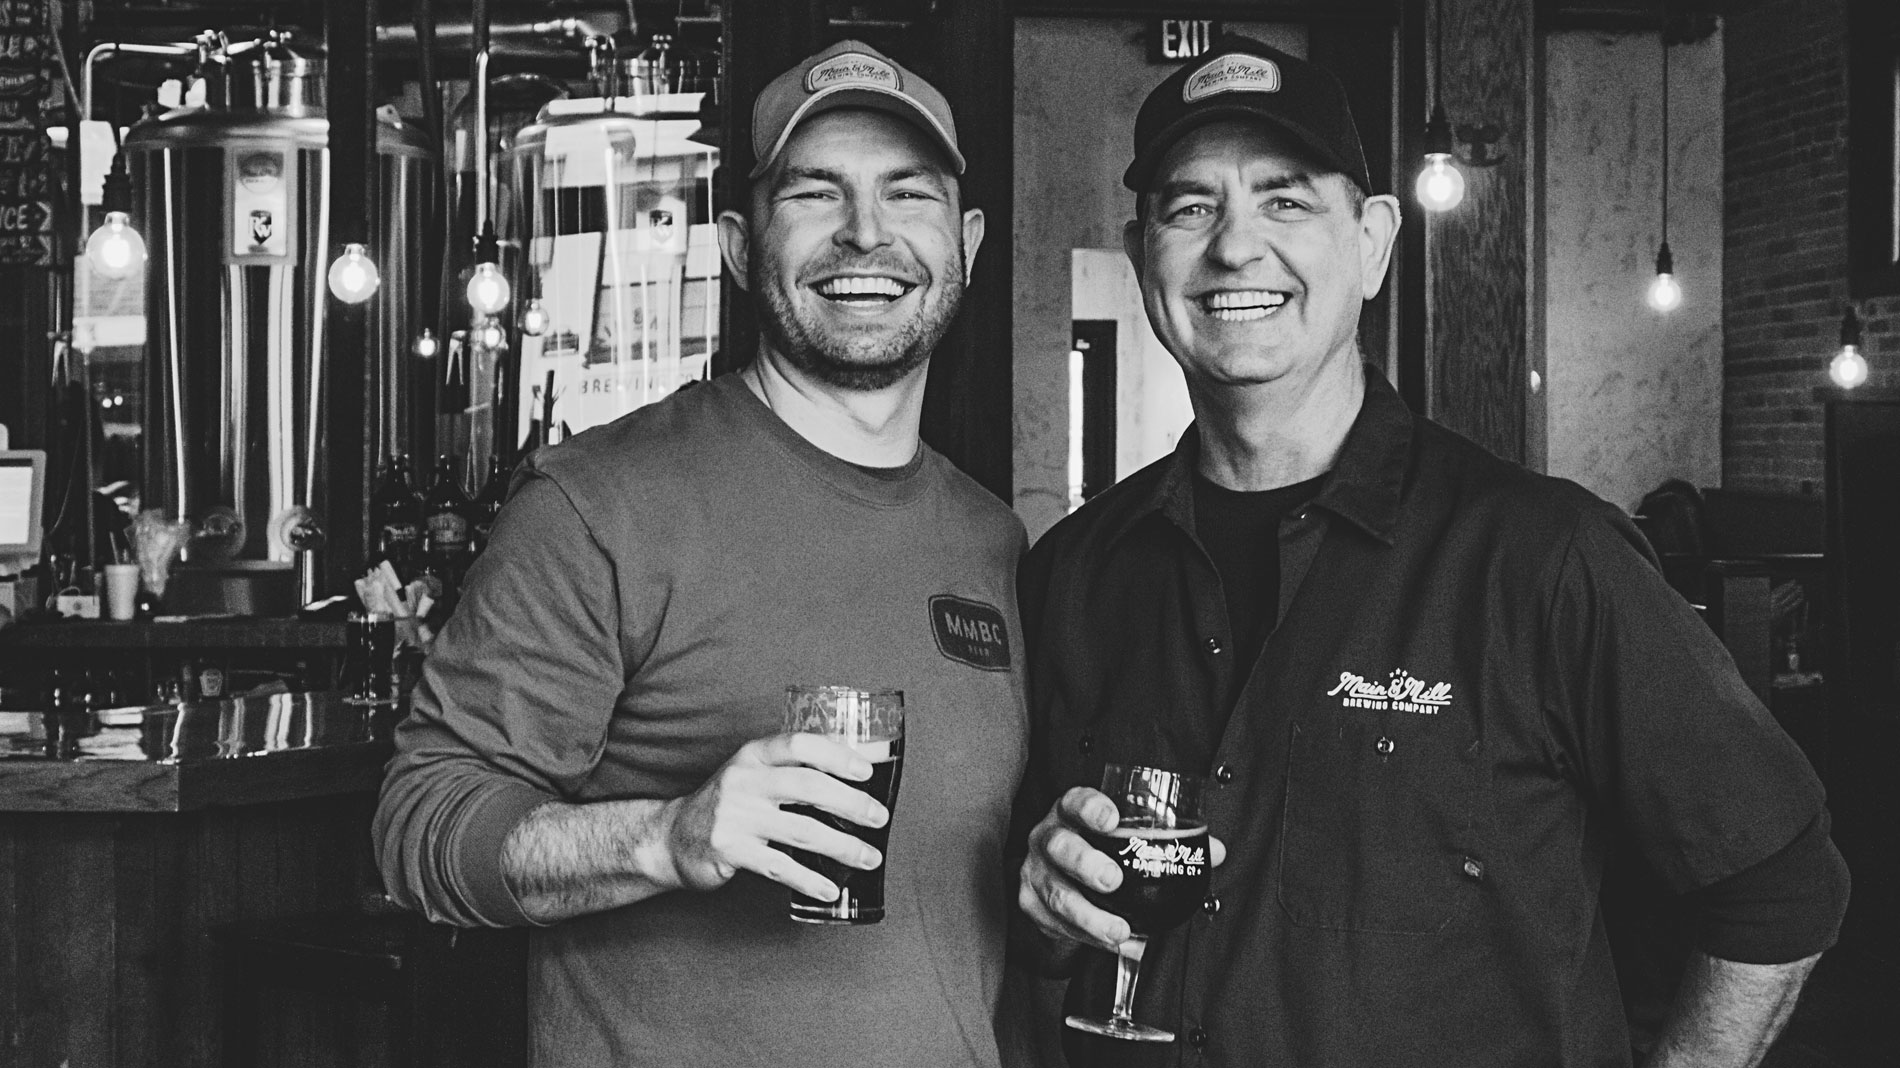 two smiling menin baseball caps holding beers and standing in front of brewing equipment